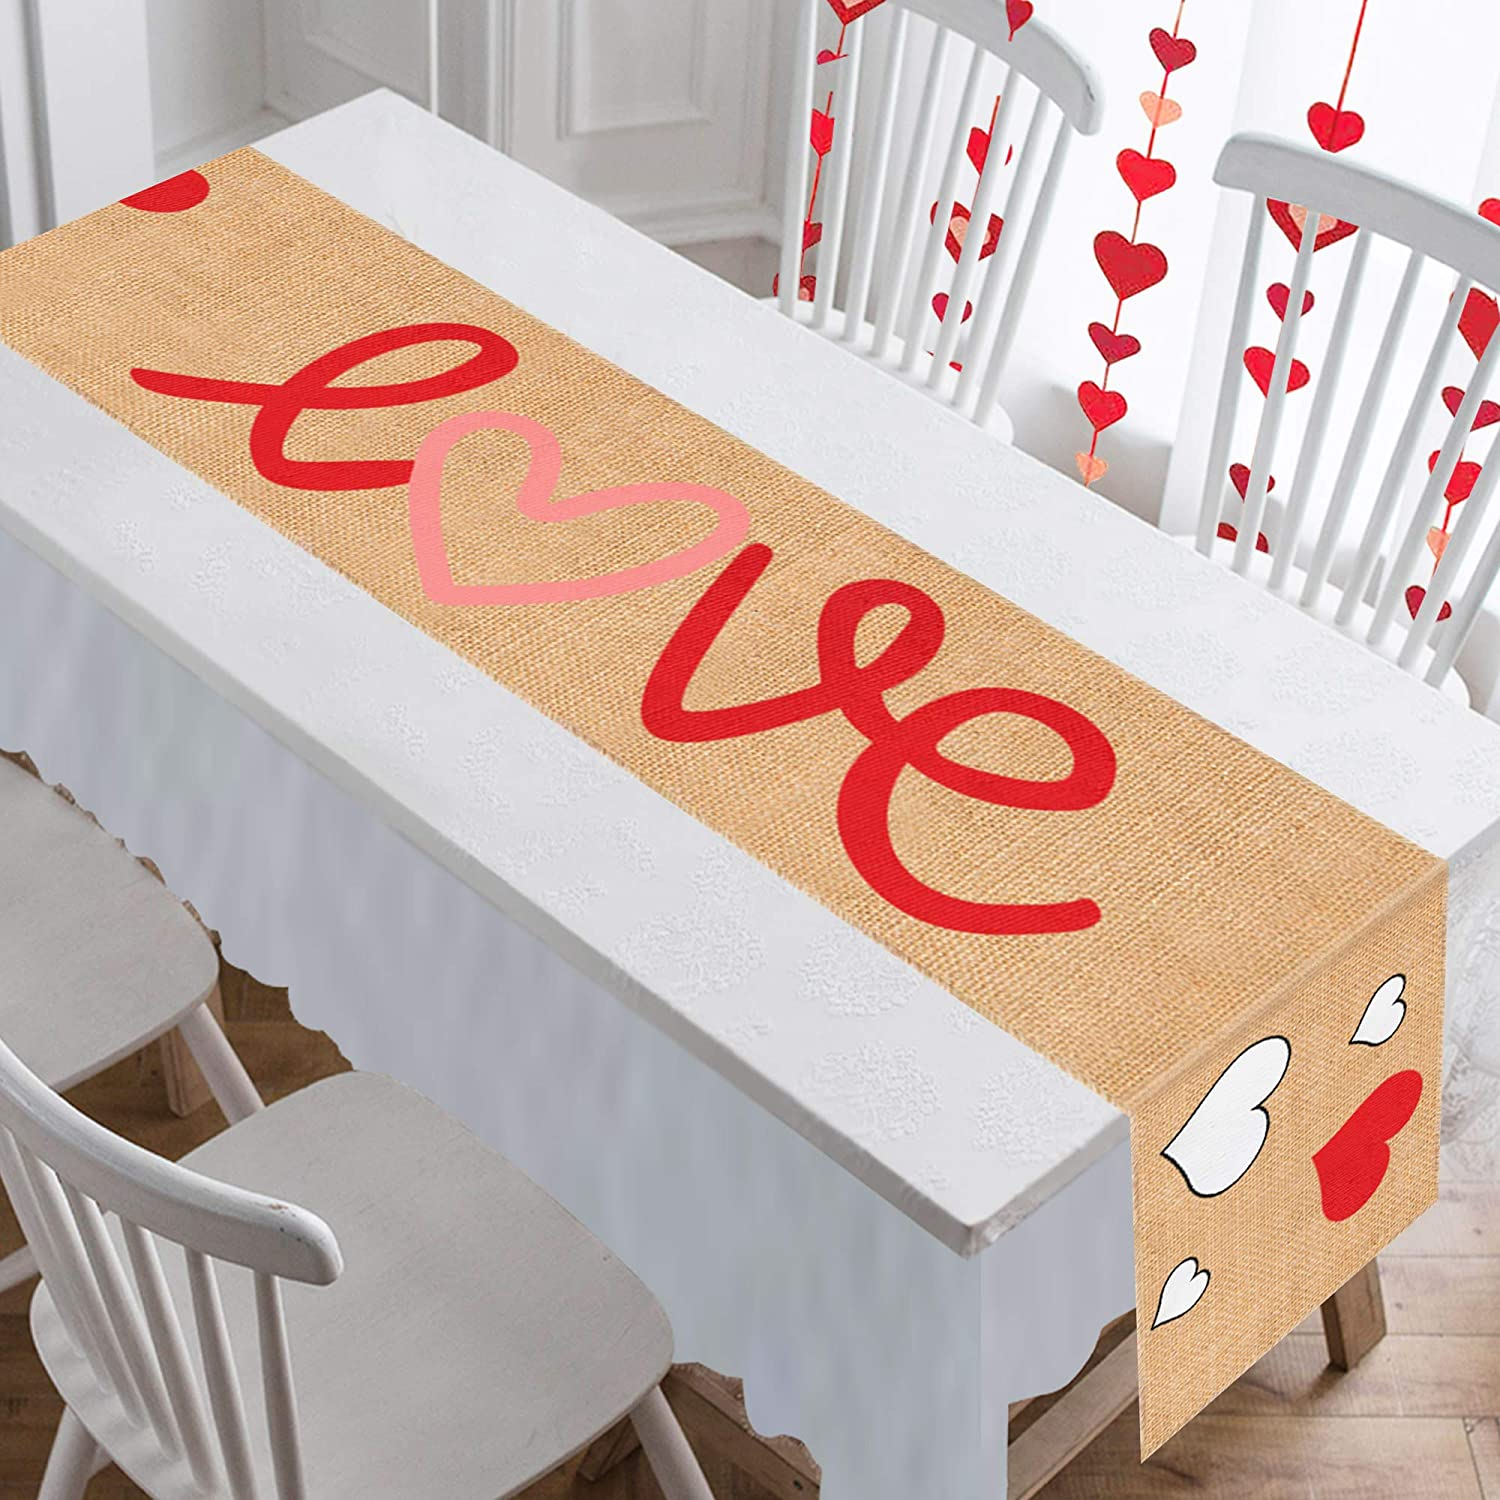 Pink Table Decoration Valentine/'s Day Centerpiece Valentine/'s Day Table Runner Valentine/'s Day Decorations Pink Hearts Table Runner